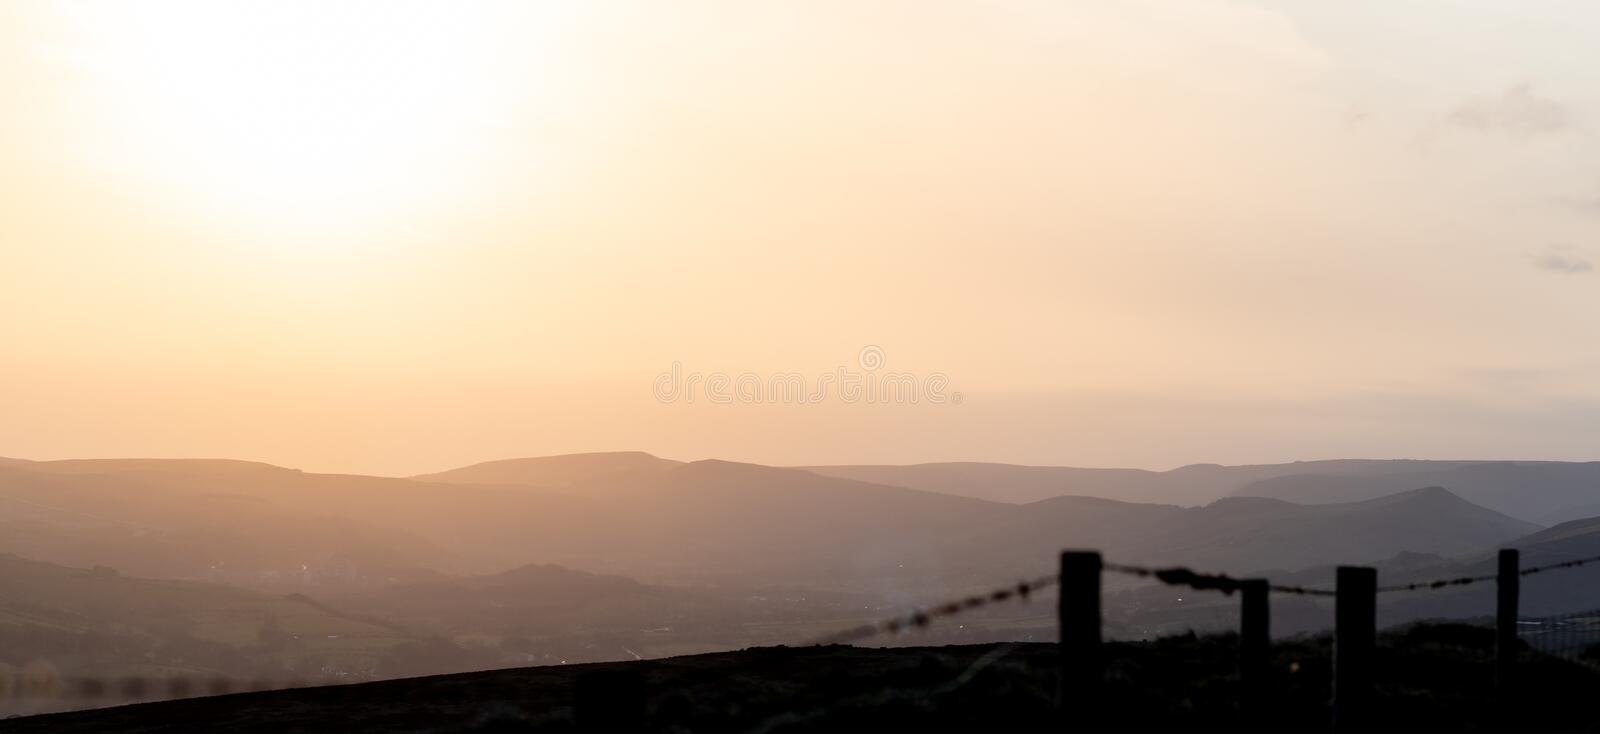 A beautiful tranquil sunset over the Peak District National Park, UK royalty free stock image